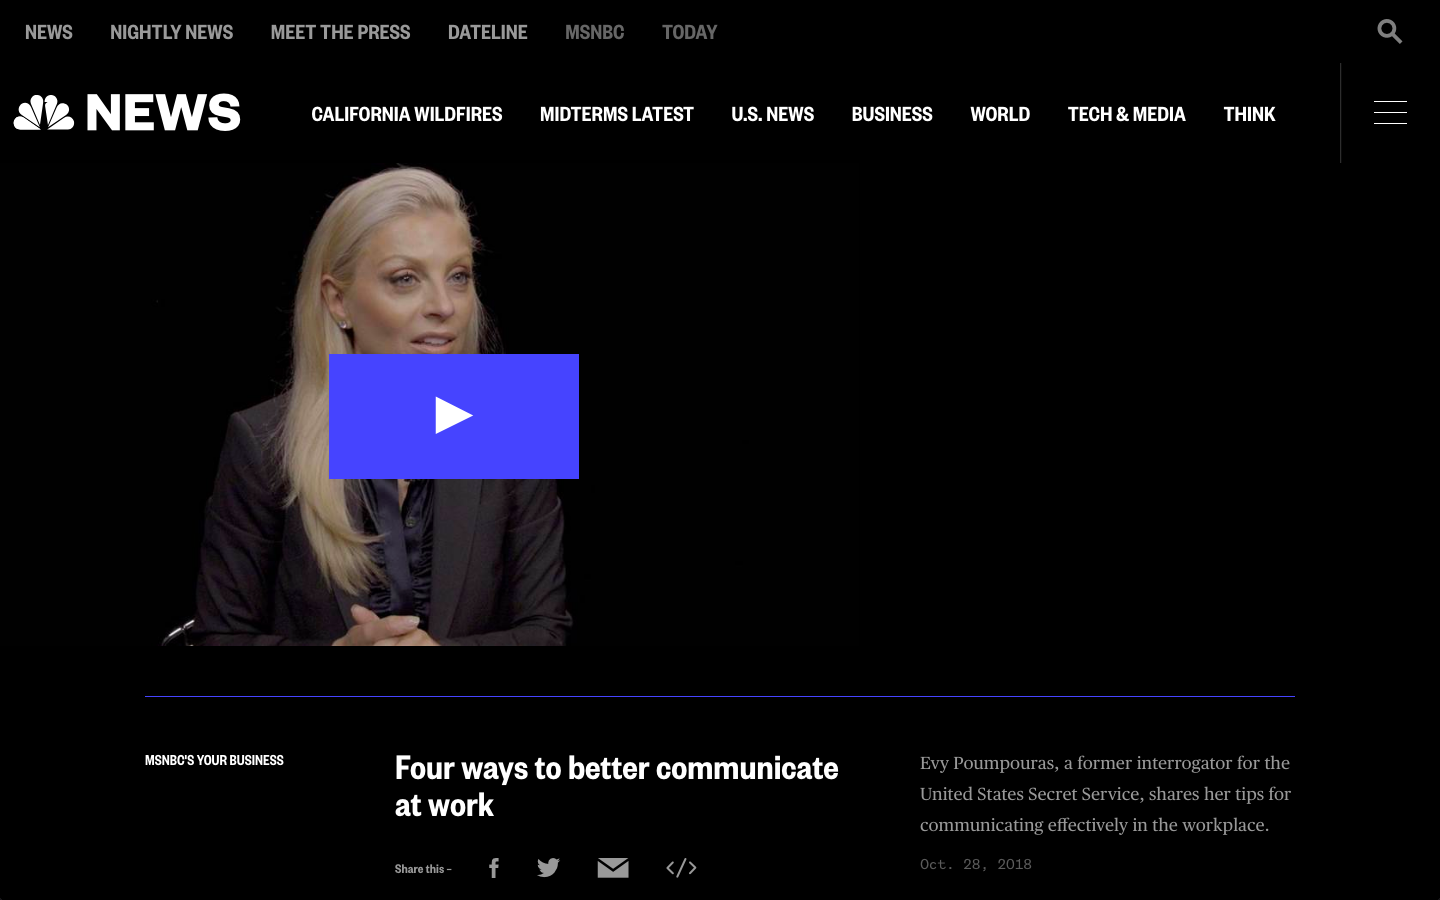 MSNBC'S YOUR BUSINESS - Four ways to better communicate at work